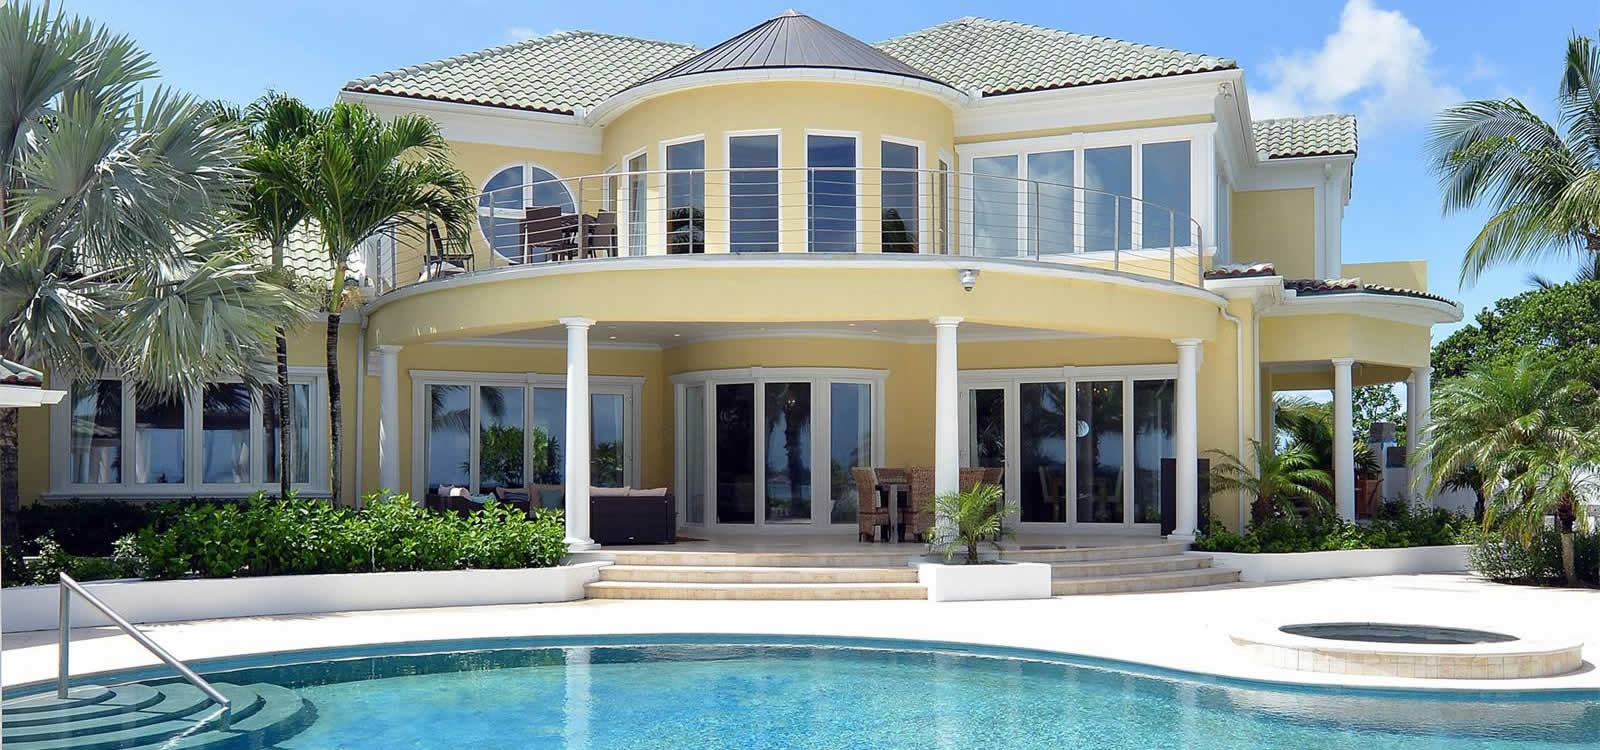 Bahamas Old Fort Bay Luxury Beachfront Home For Sale 9